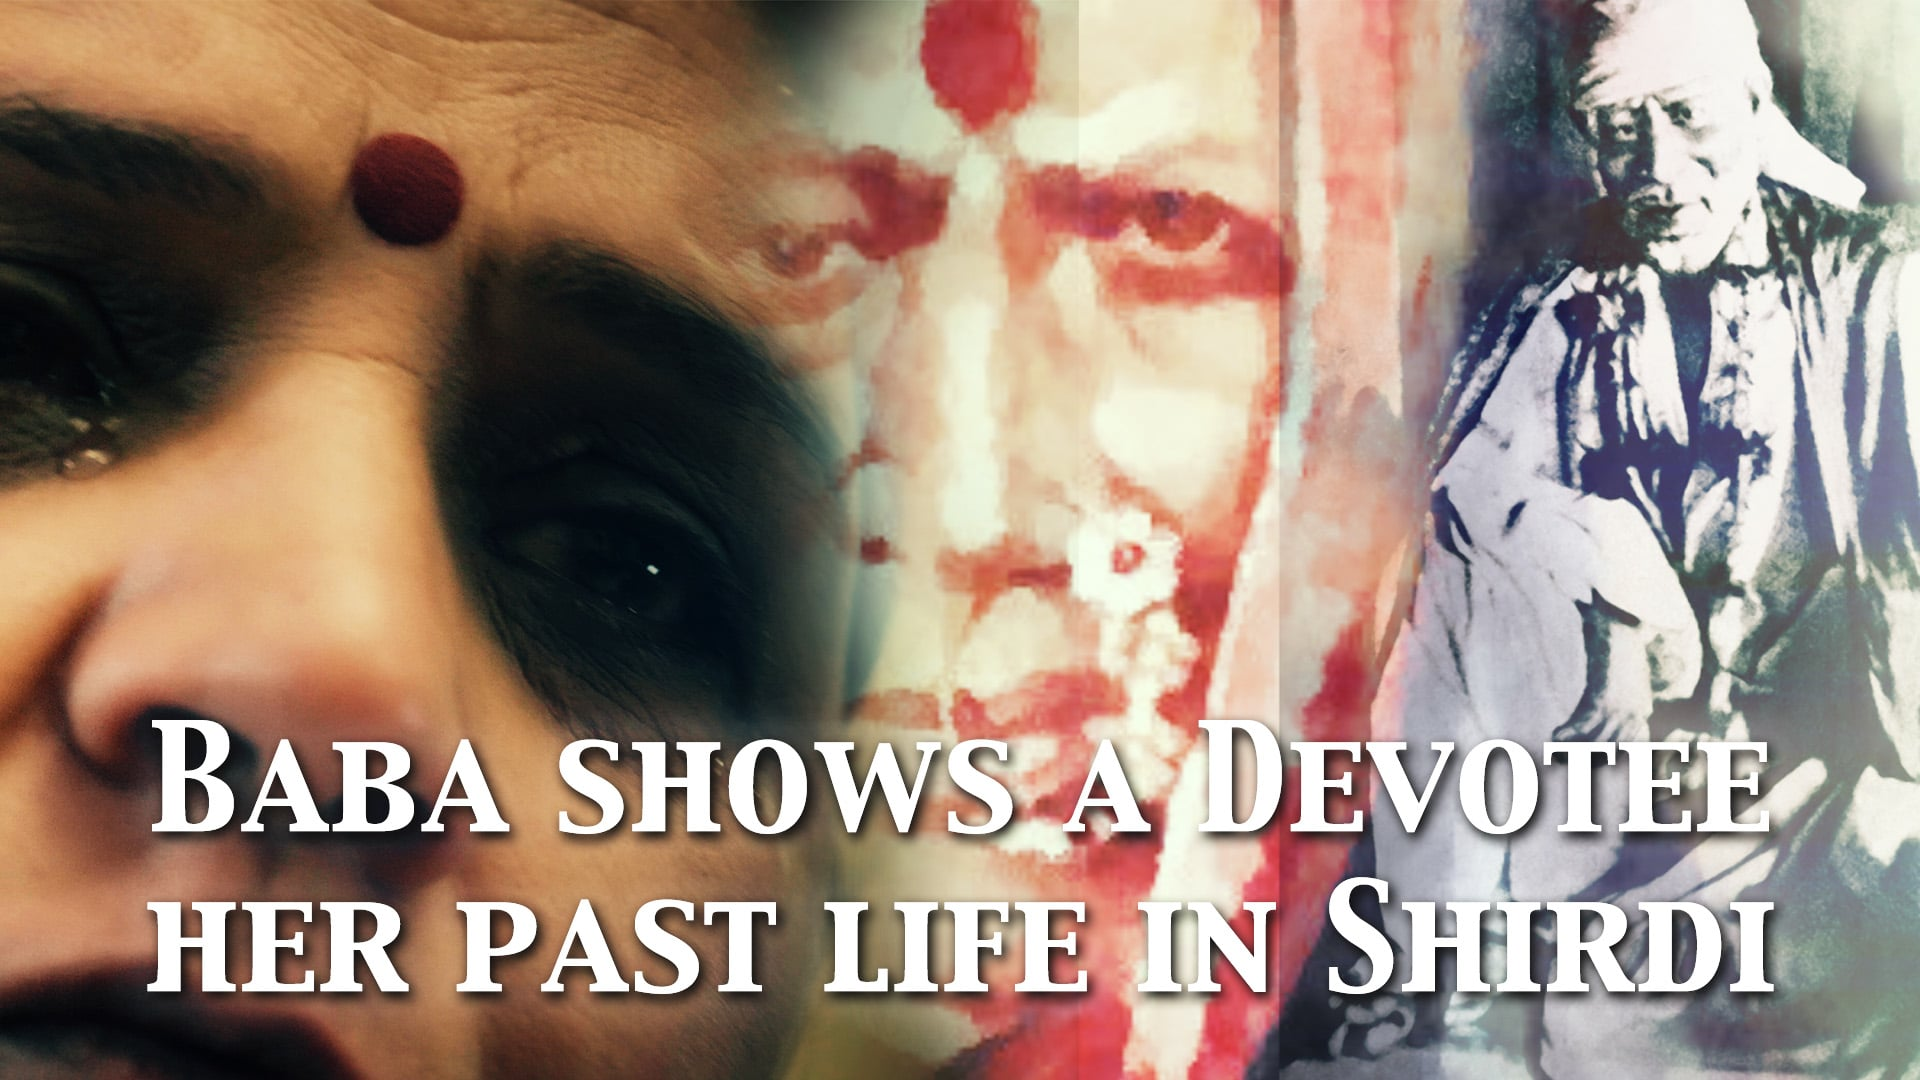 Sai Baba shows a devotee her past life in Shirdi